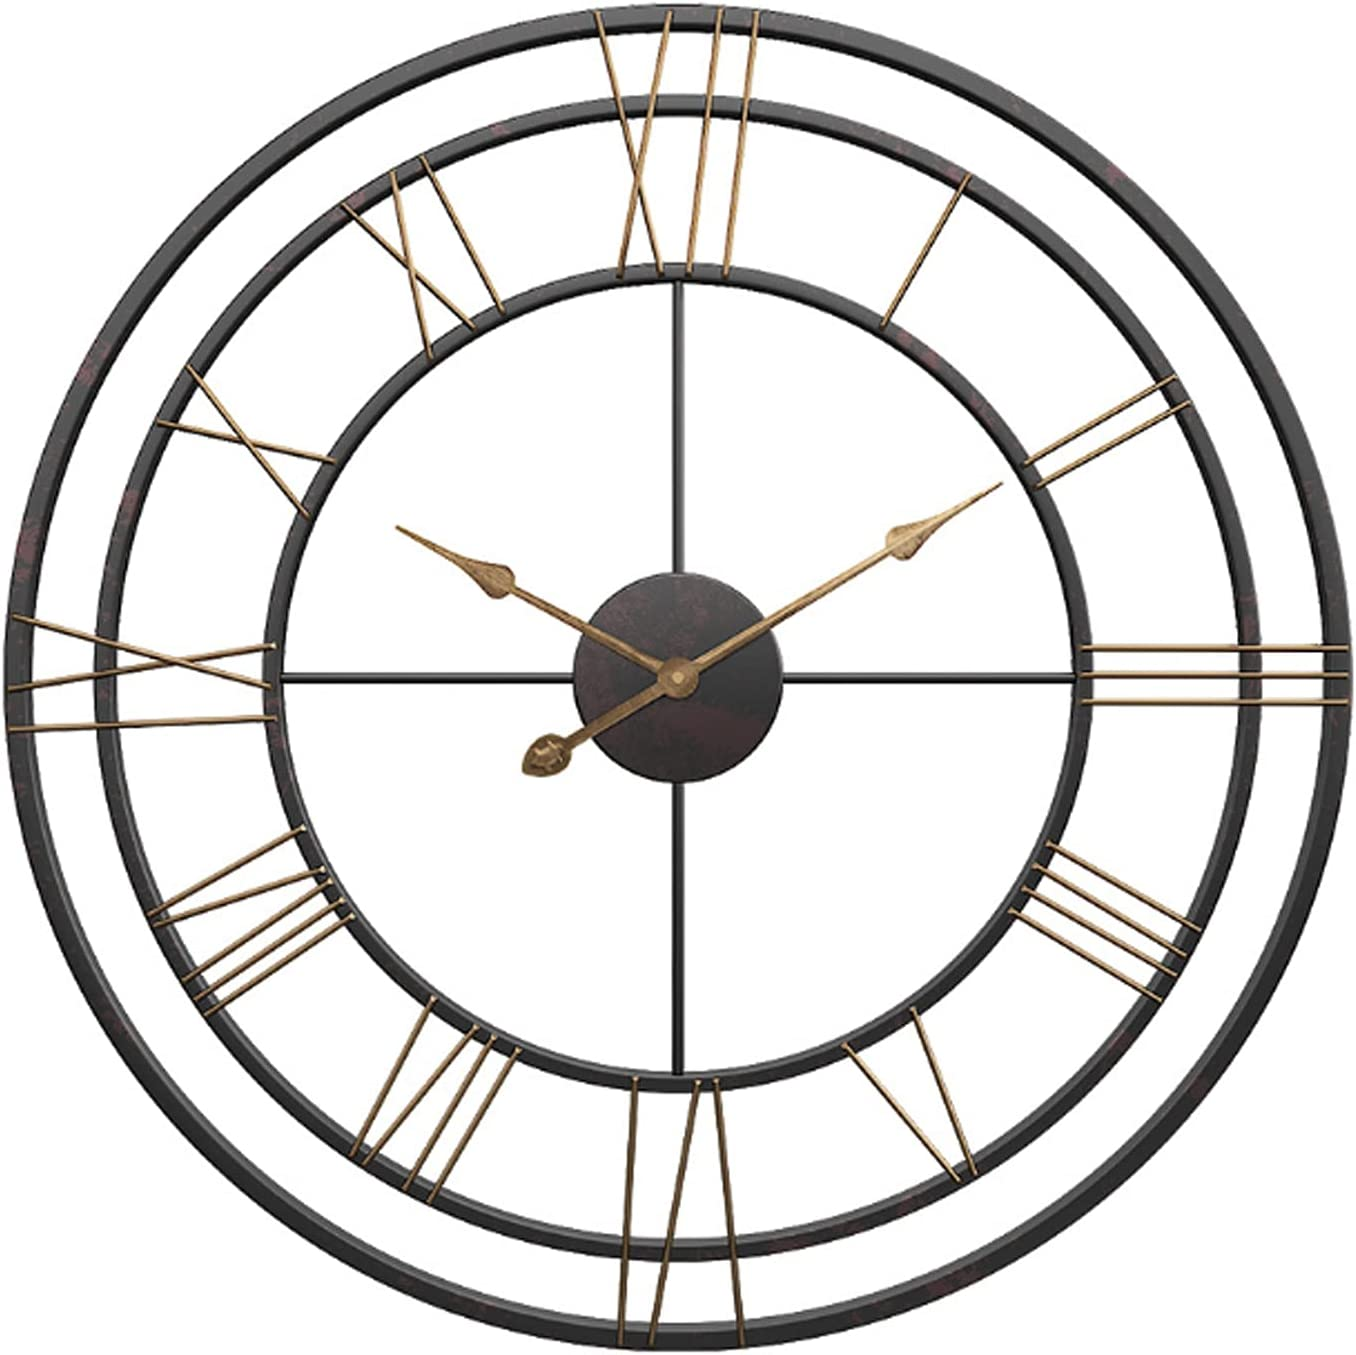 20 Inch Large Wall Clocks Roman Numeral for サービス European ご注文で当日配送 Industrial